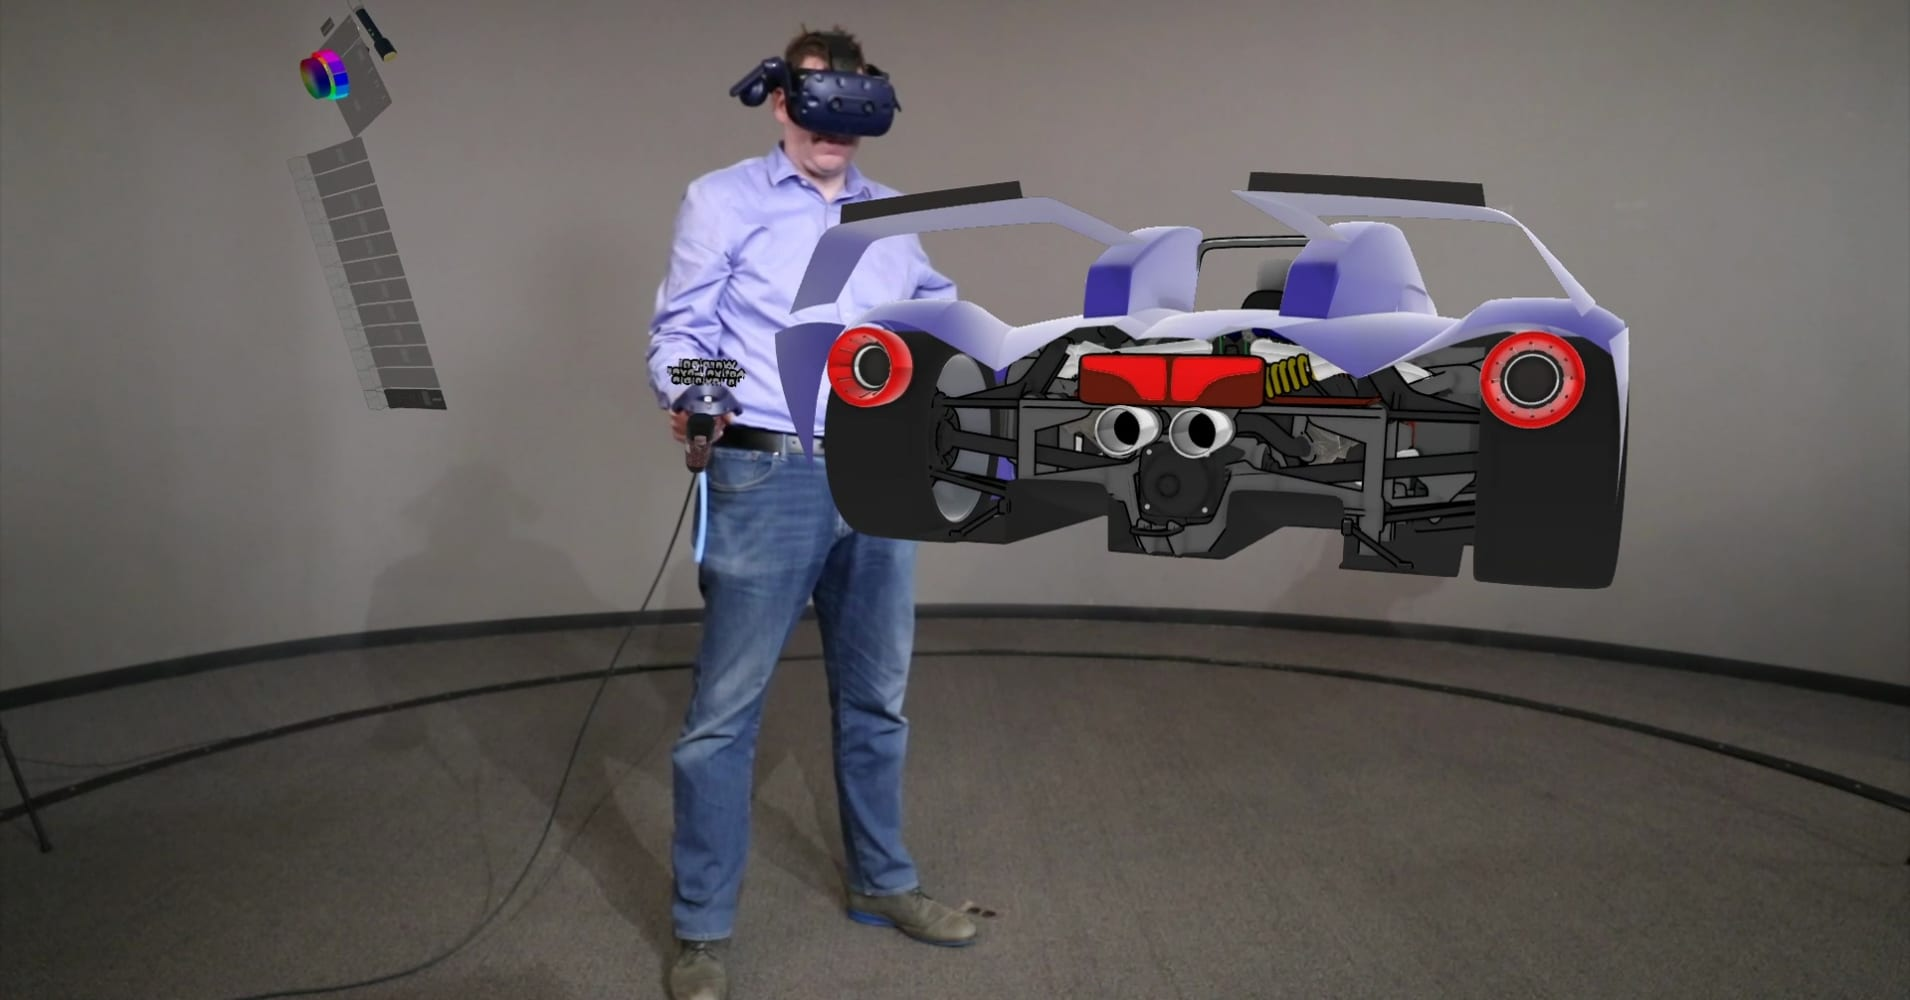 Designers at Ford are using virtual reality tools to work with colleagues remotely